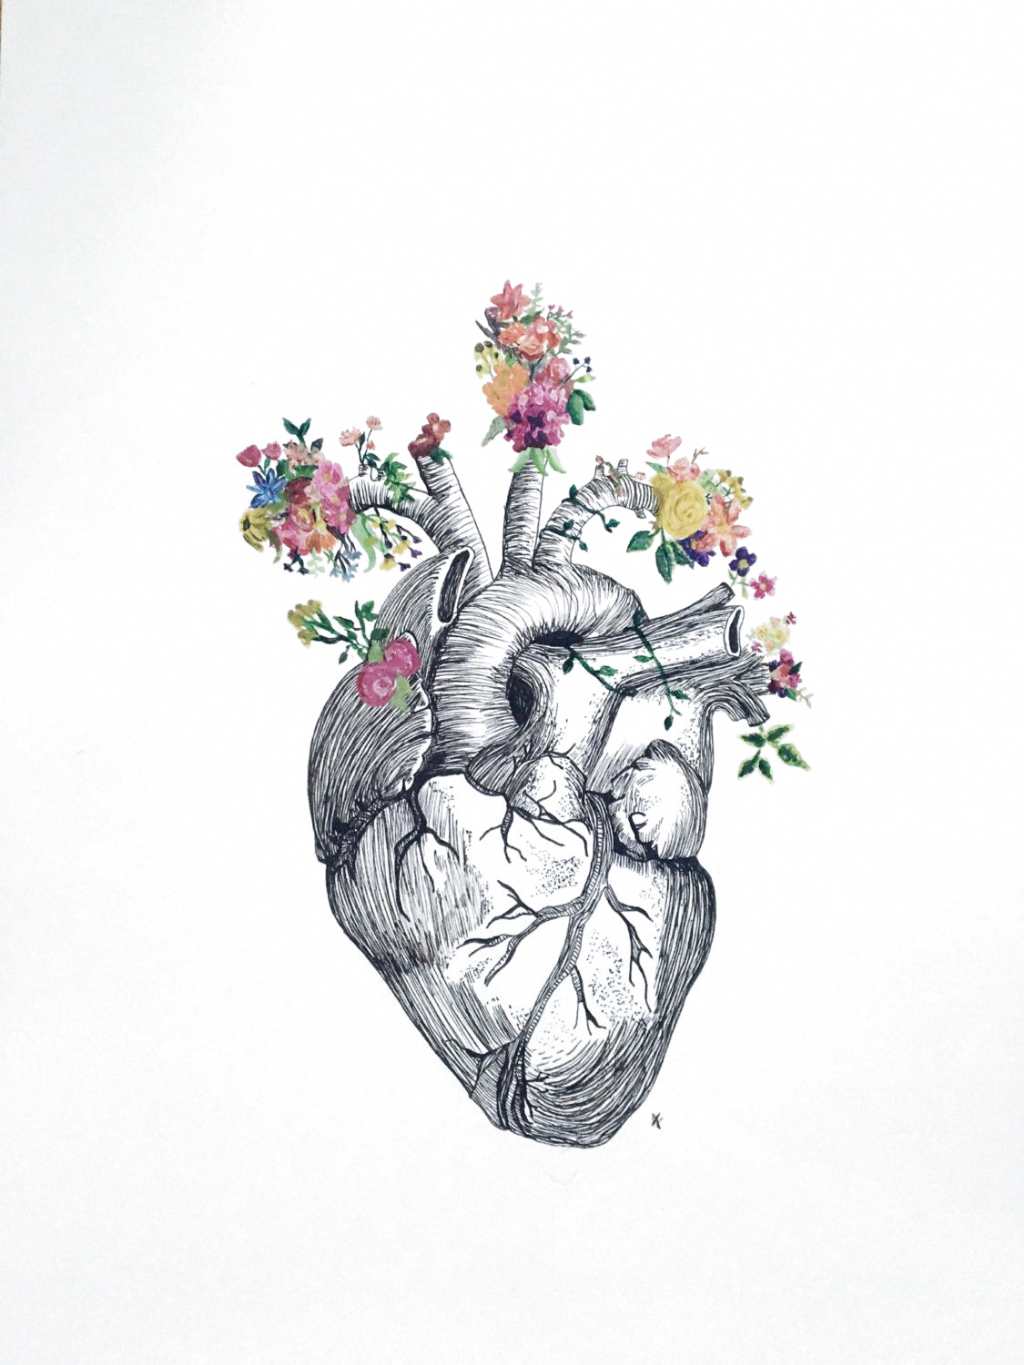 Anatomical Heart Flowers Etsy Anatomical Heart Art Heart Drawing Anatomical Heart Drawing